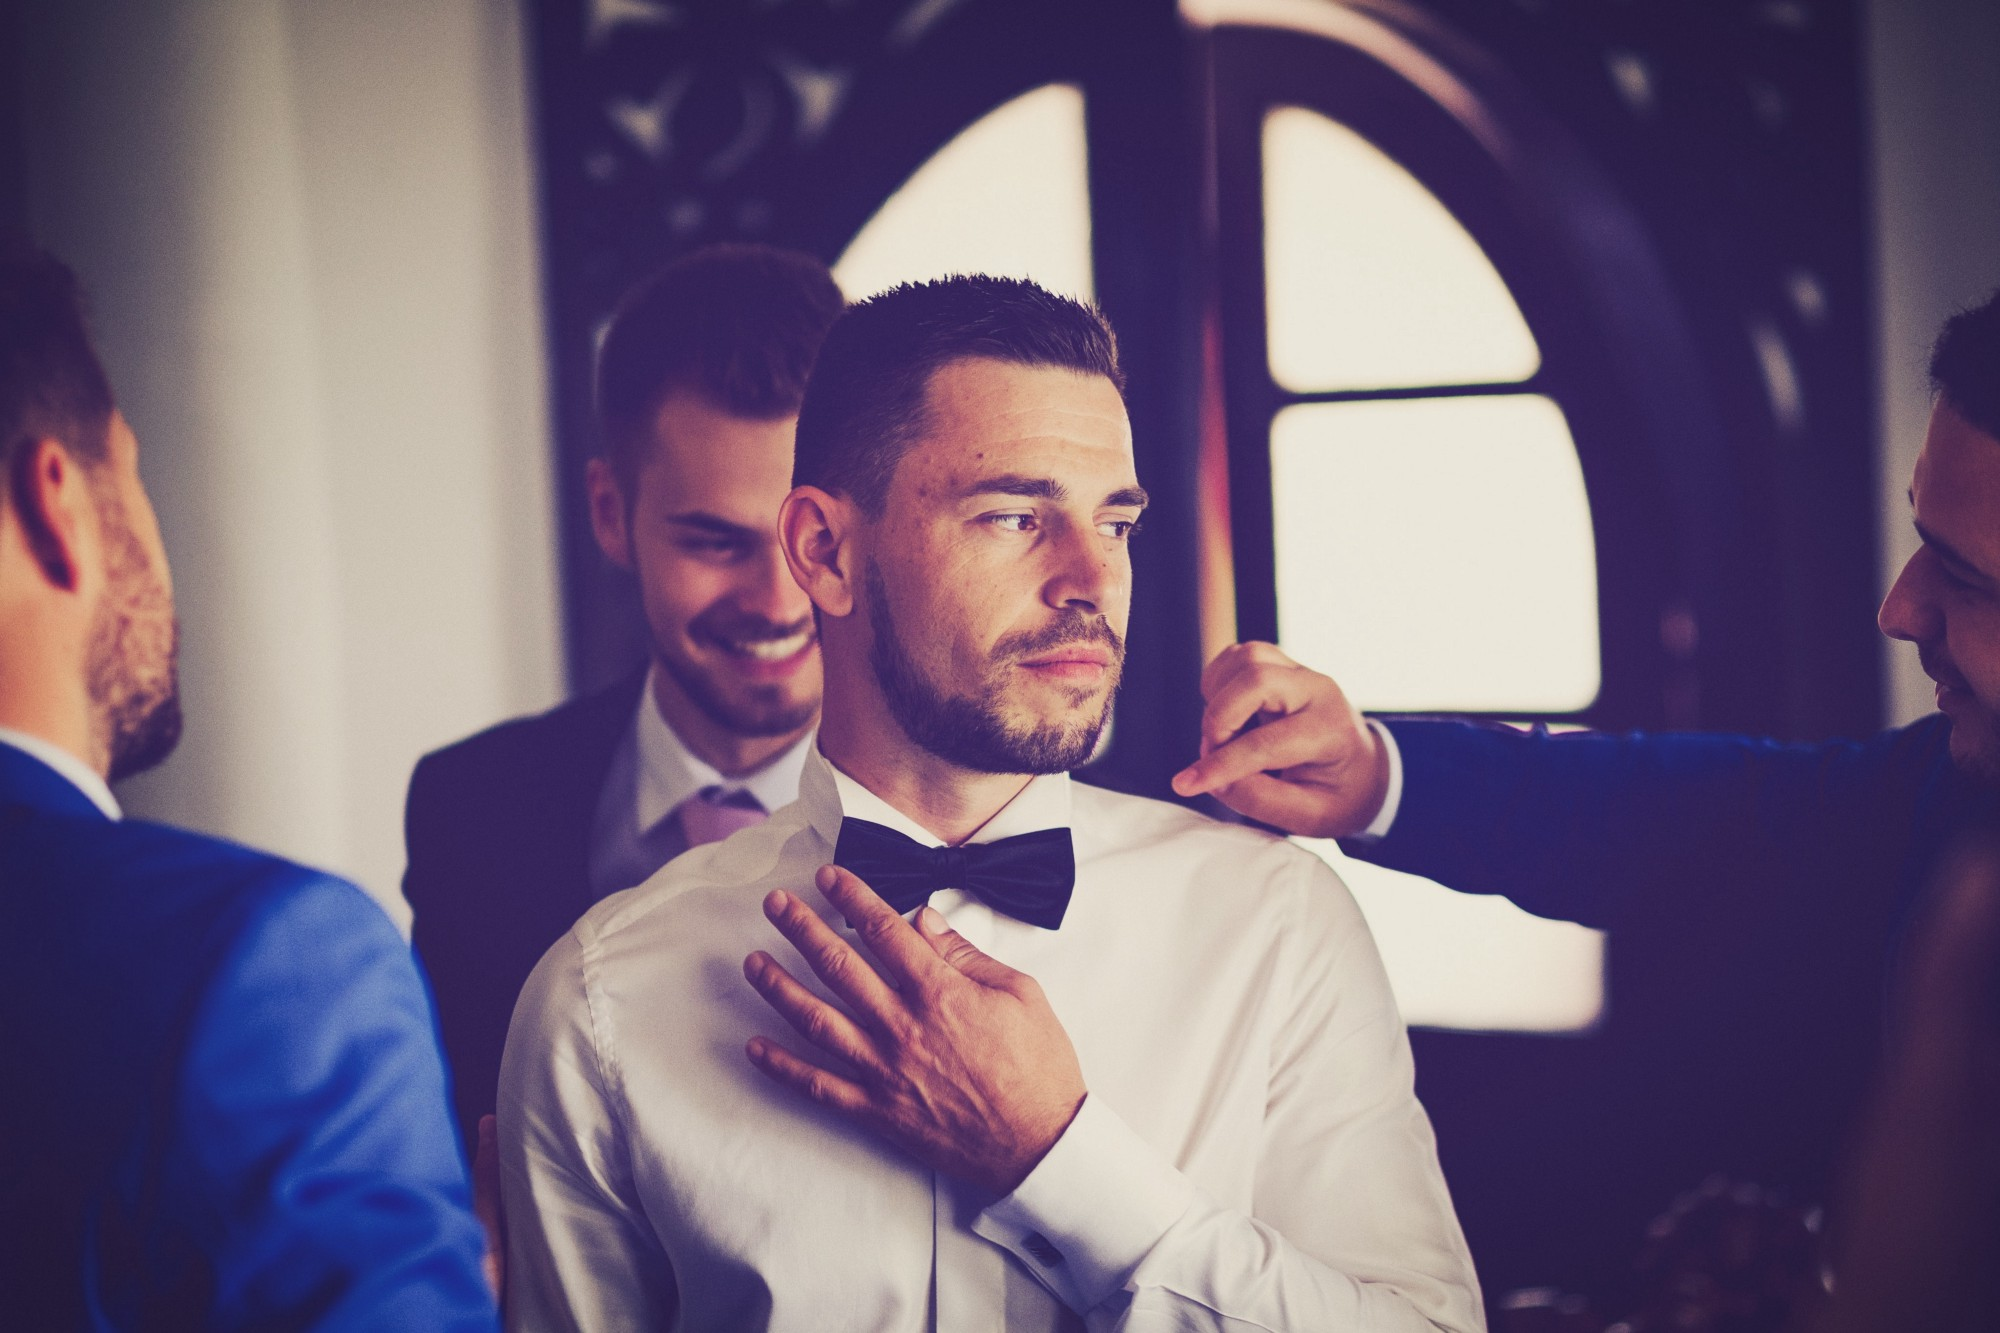 A man in a wedding suit looking aside while surrounded by friends